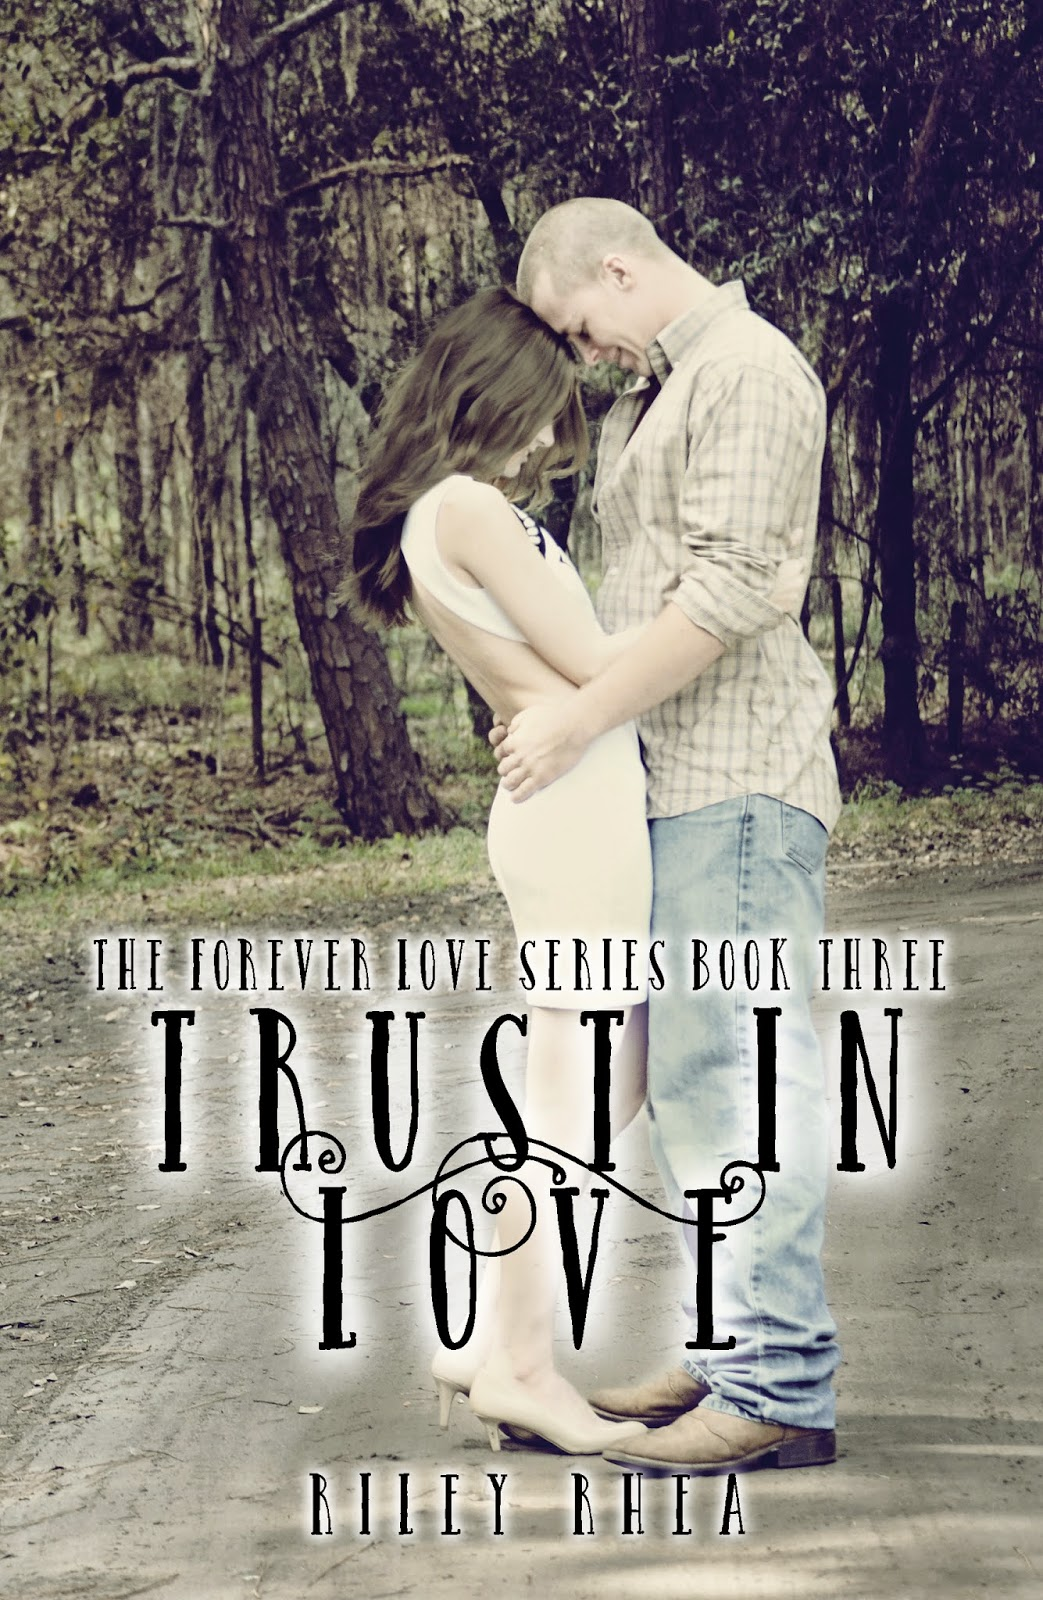 sma relationship trust series